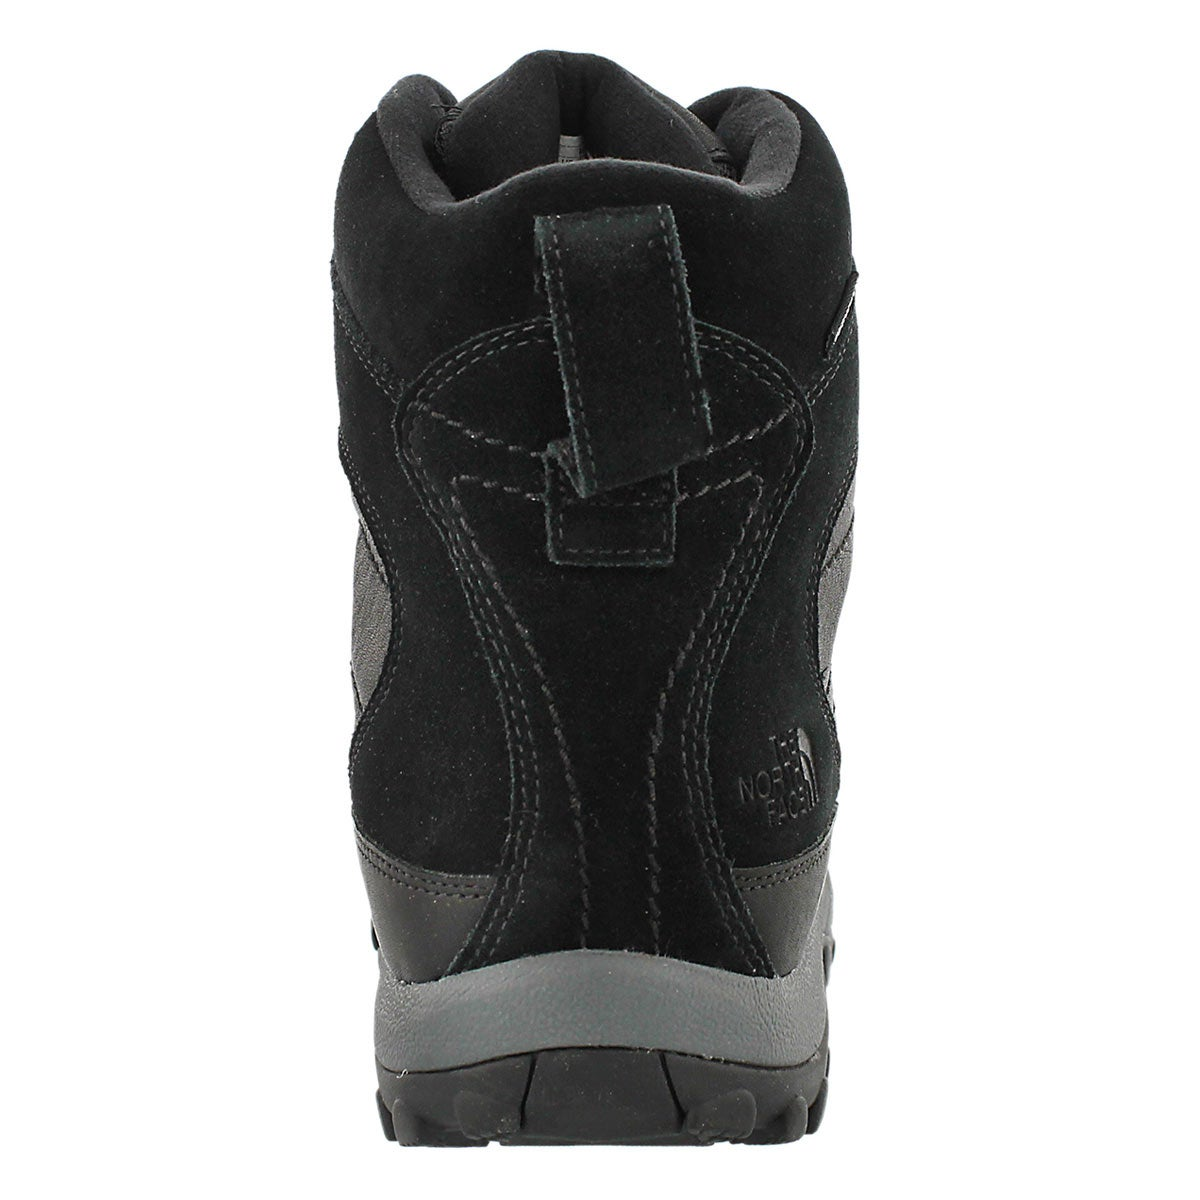 Mns ChilkatLeatherInsulatd blk wntr boot